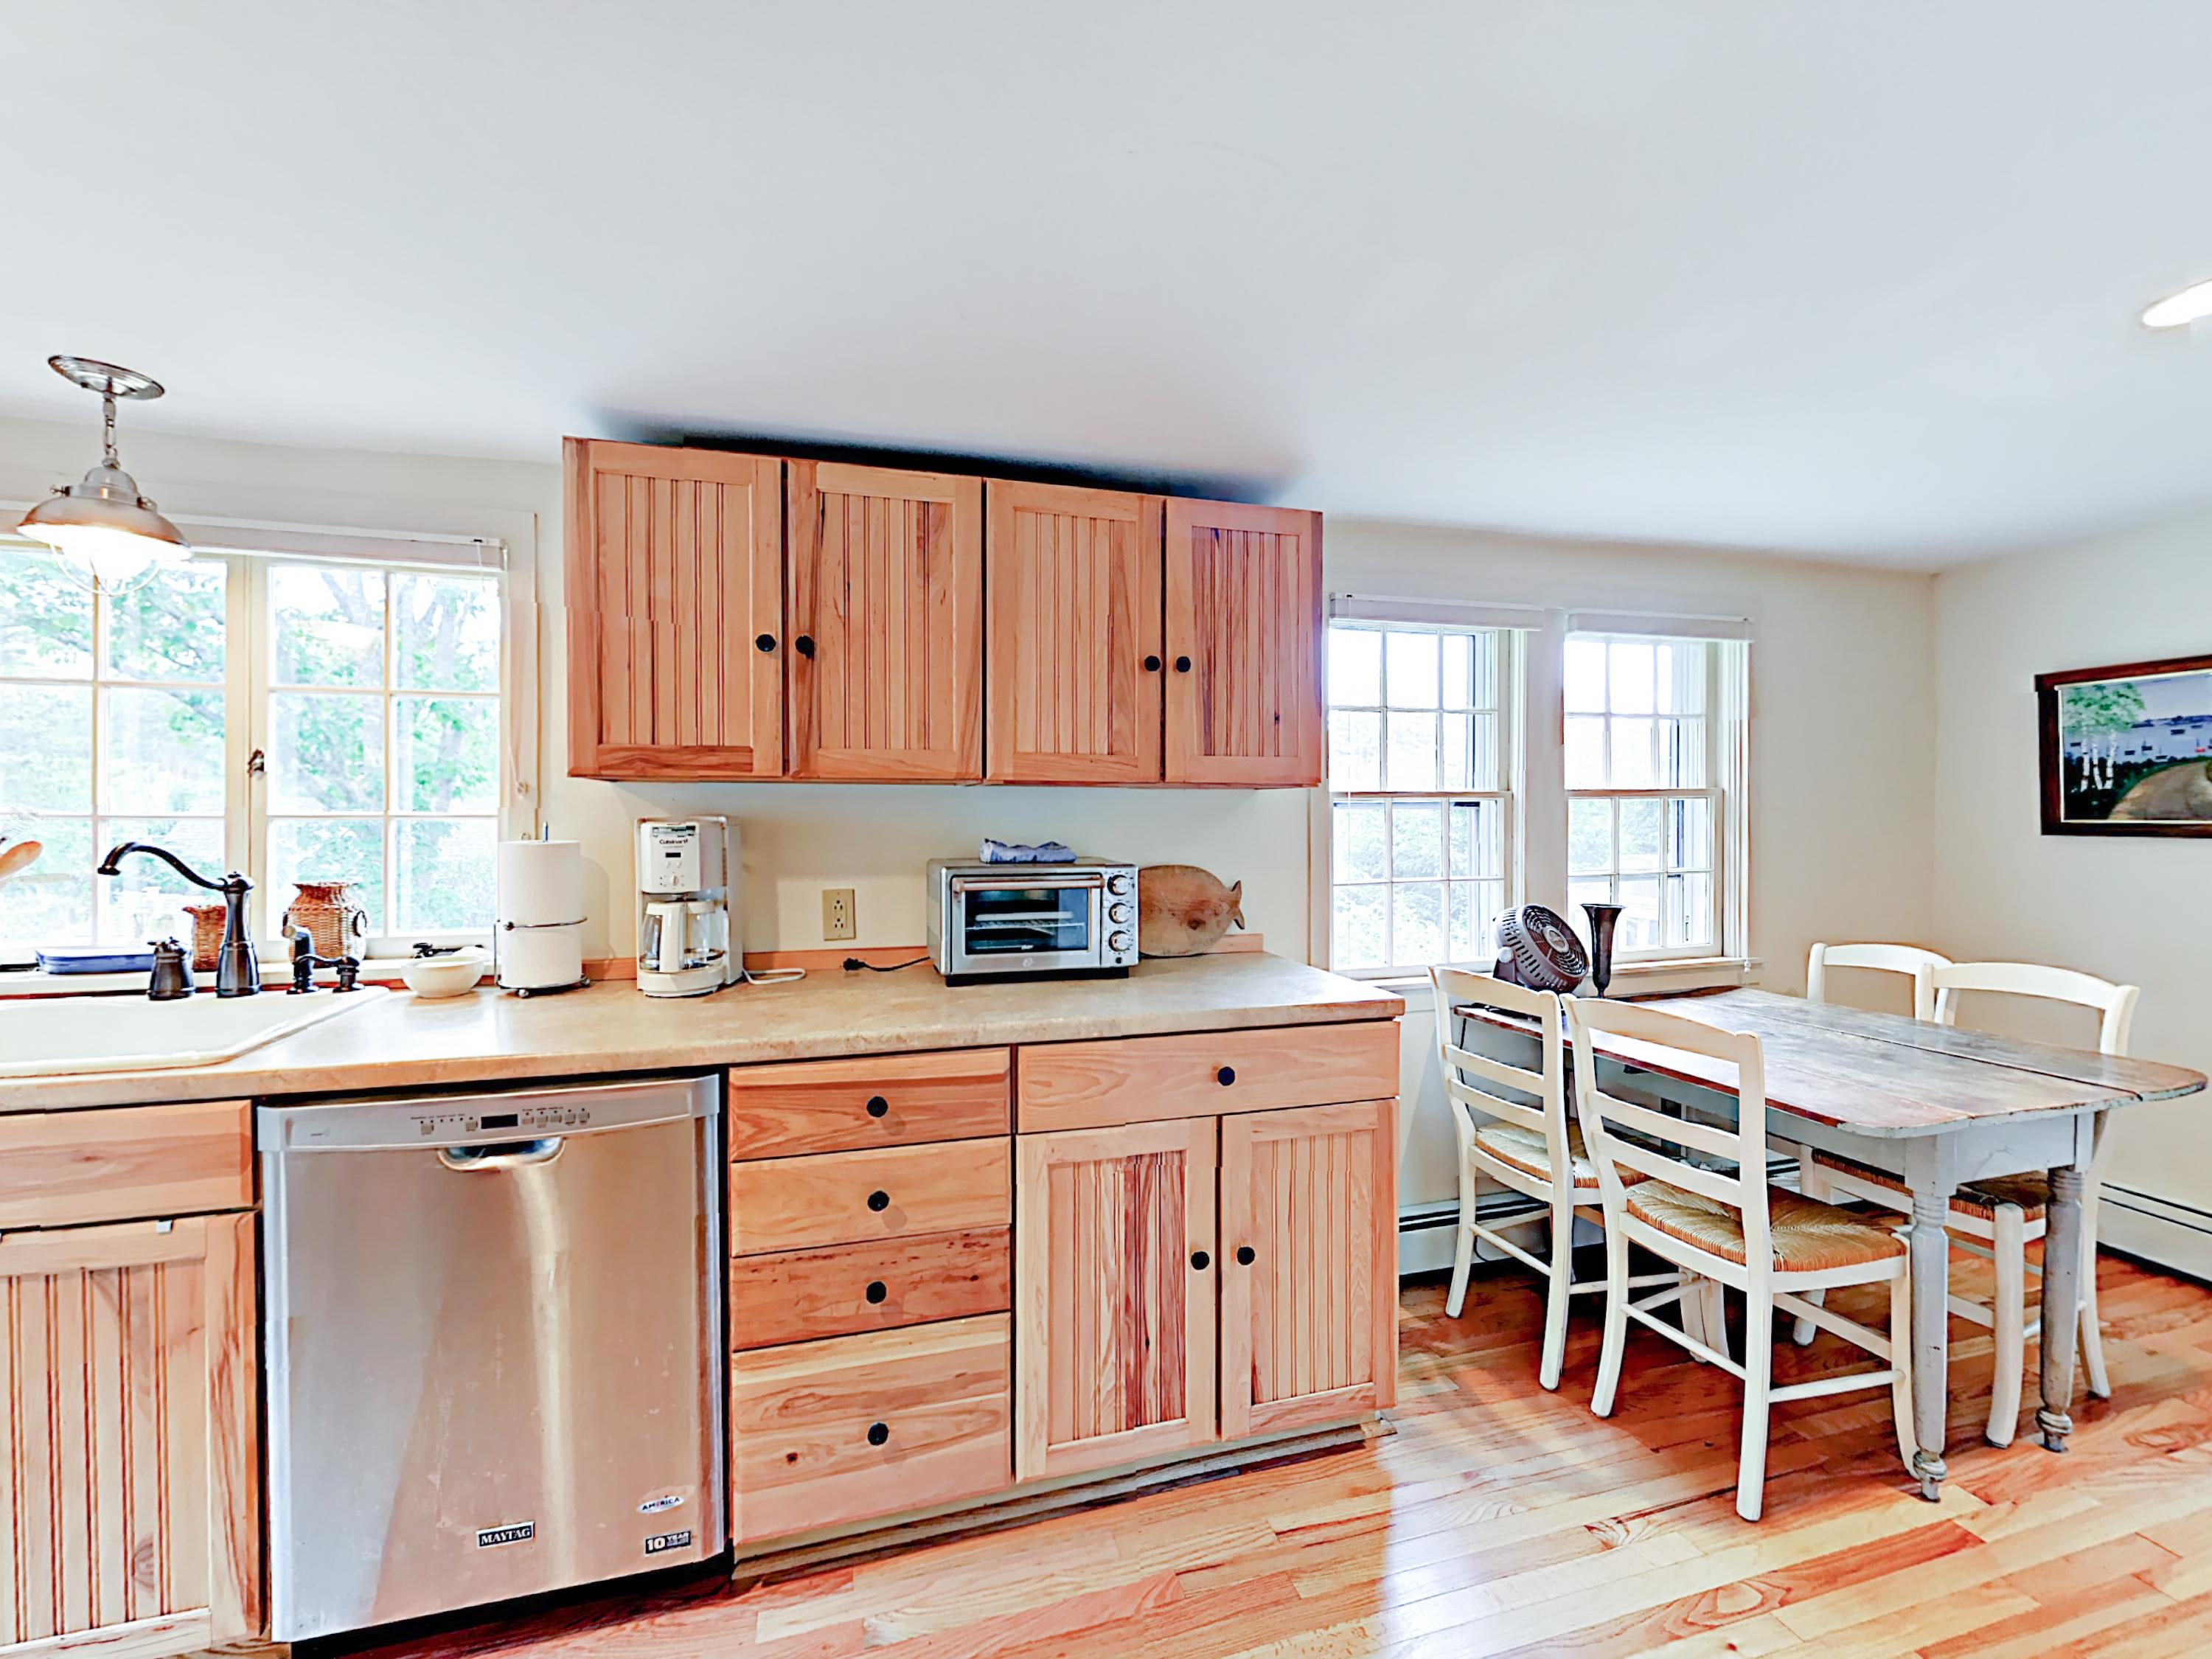 A newly remodeled kitchen boasts glowing hardwood floors, galley-style cooking, and offers plenty of sunlight.